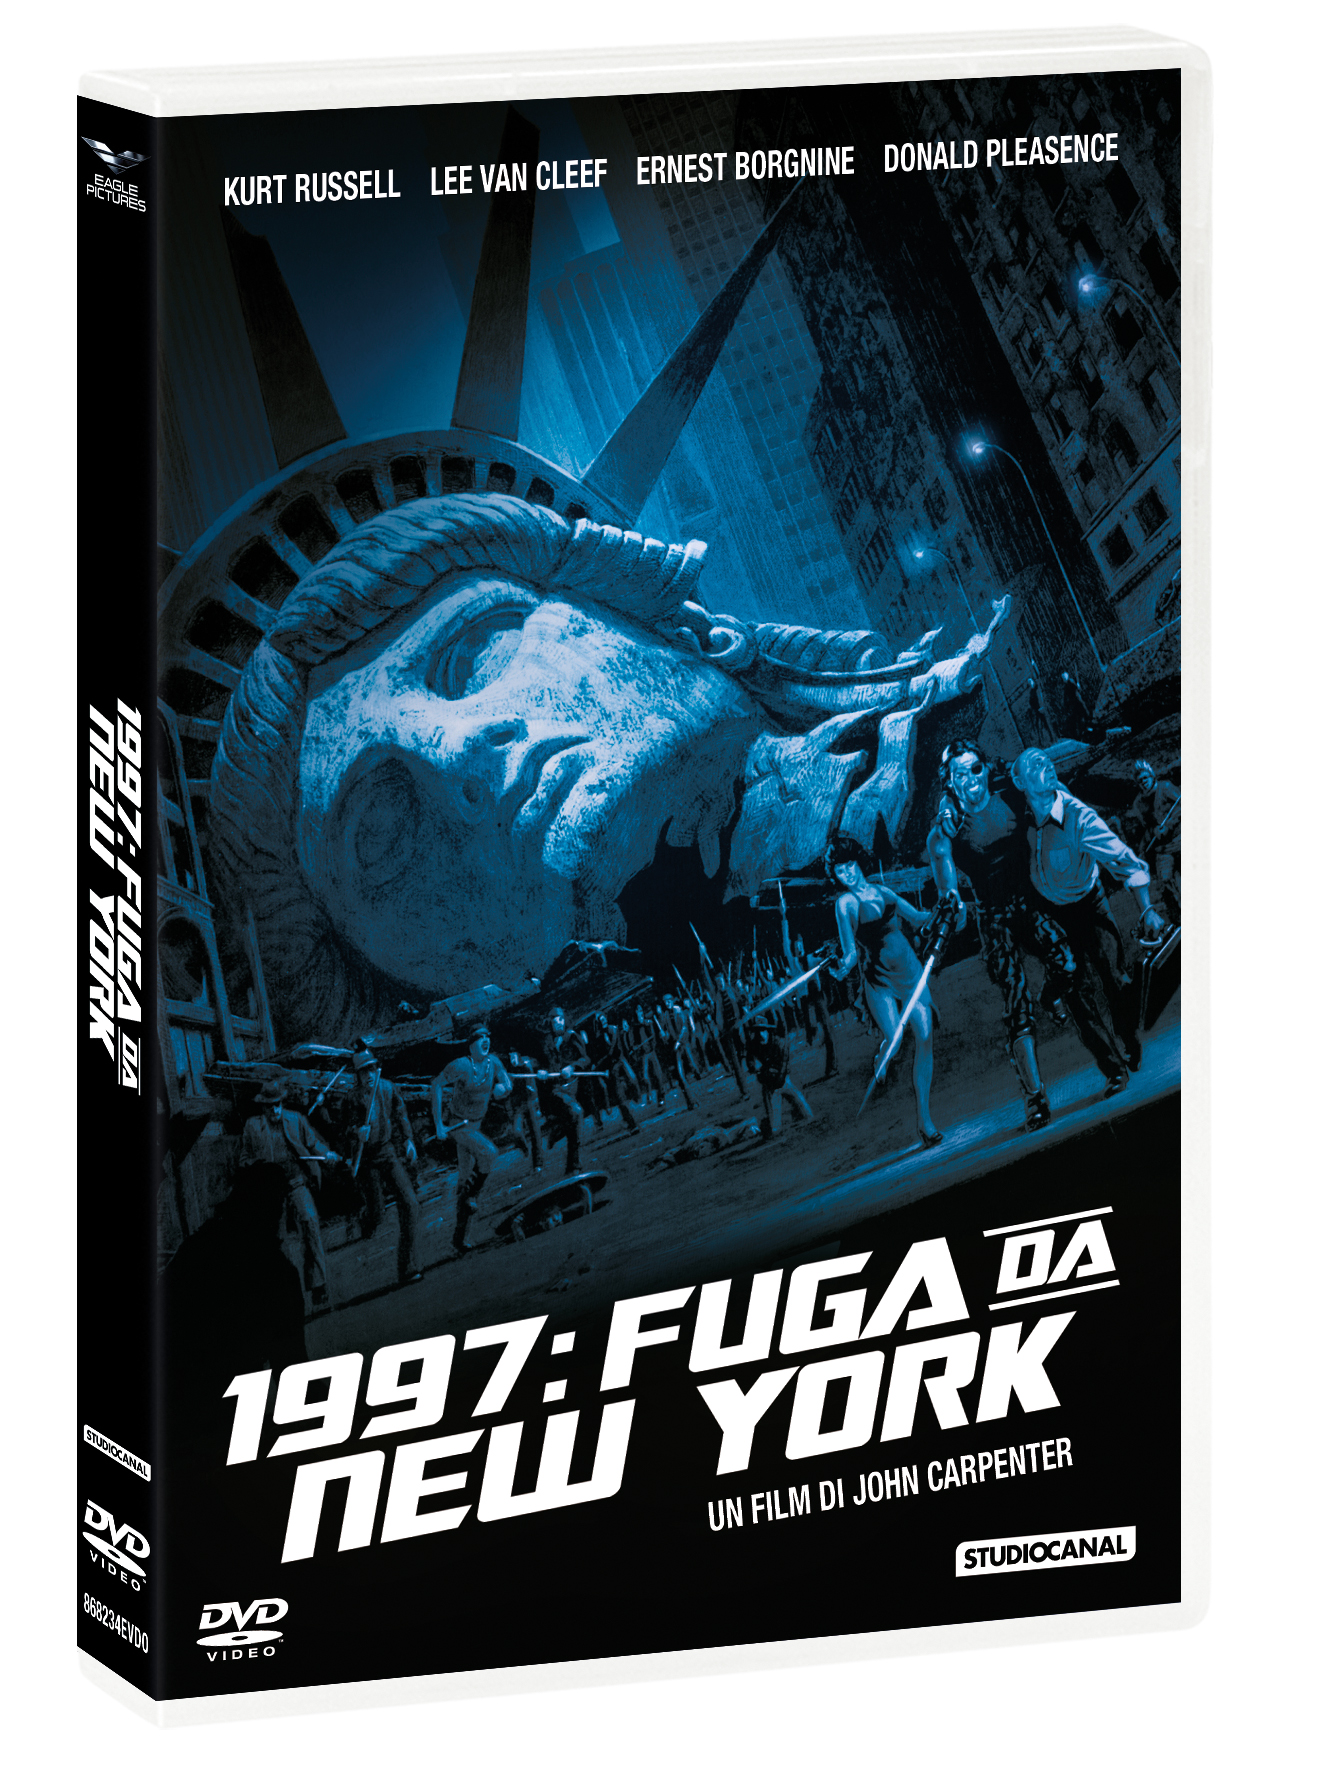 1997: FUGA DA NEW YORK (DVD+CALENDARIO 2021) (DVD)